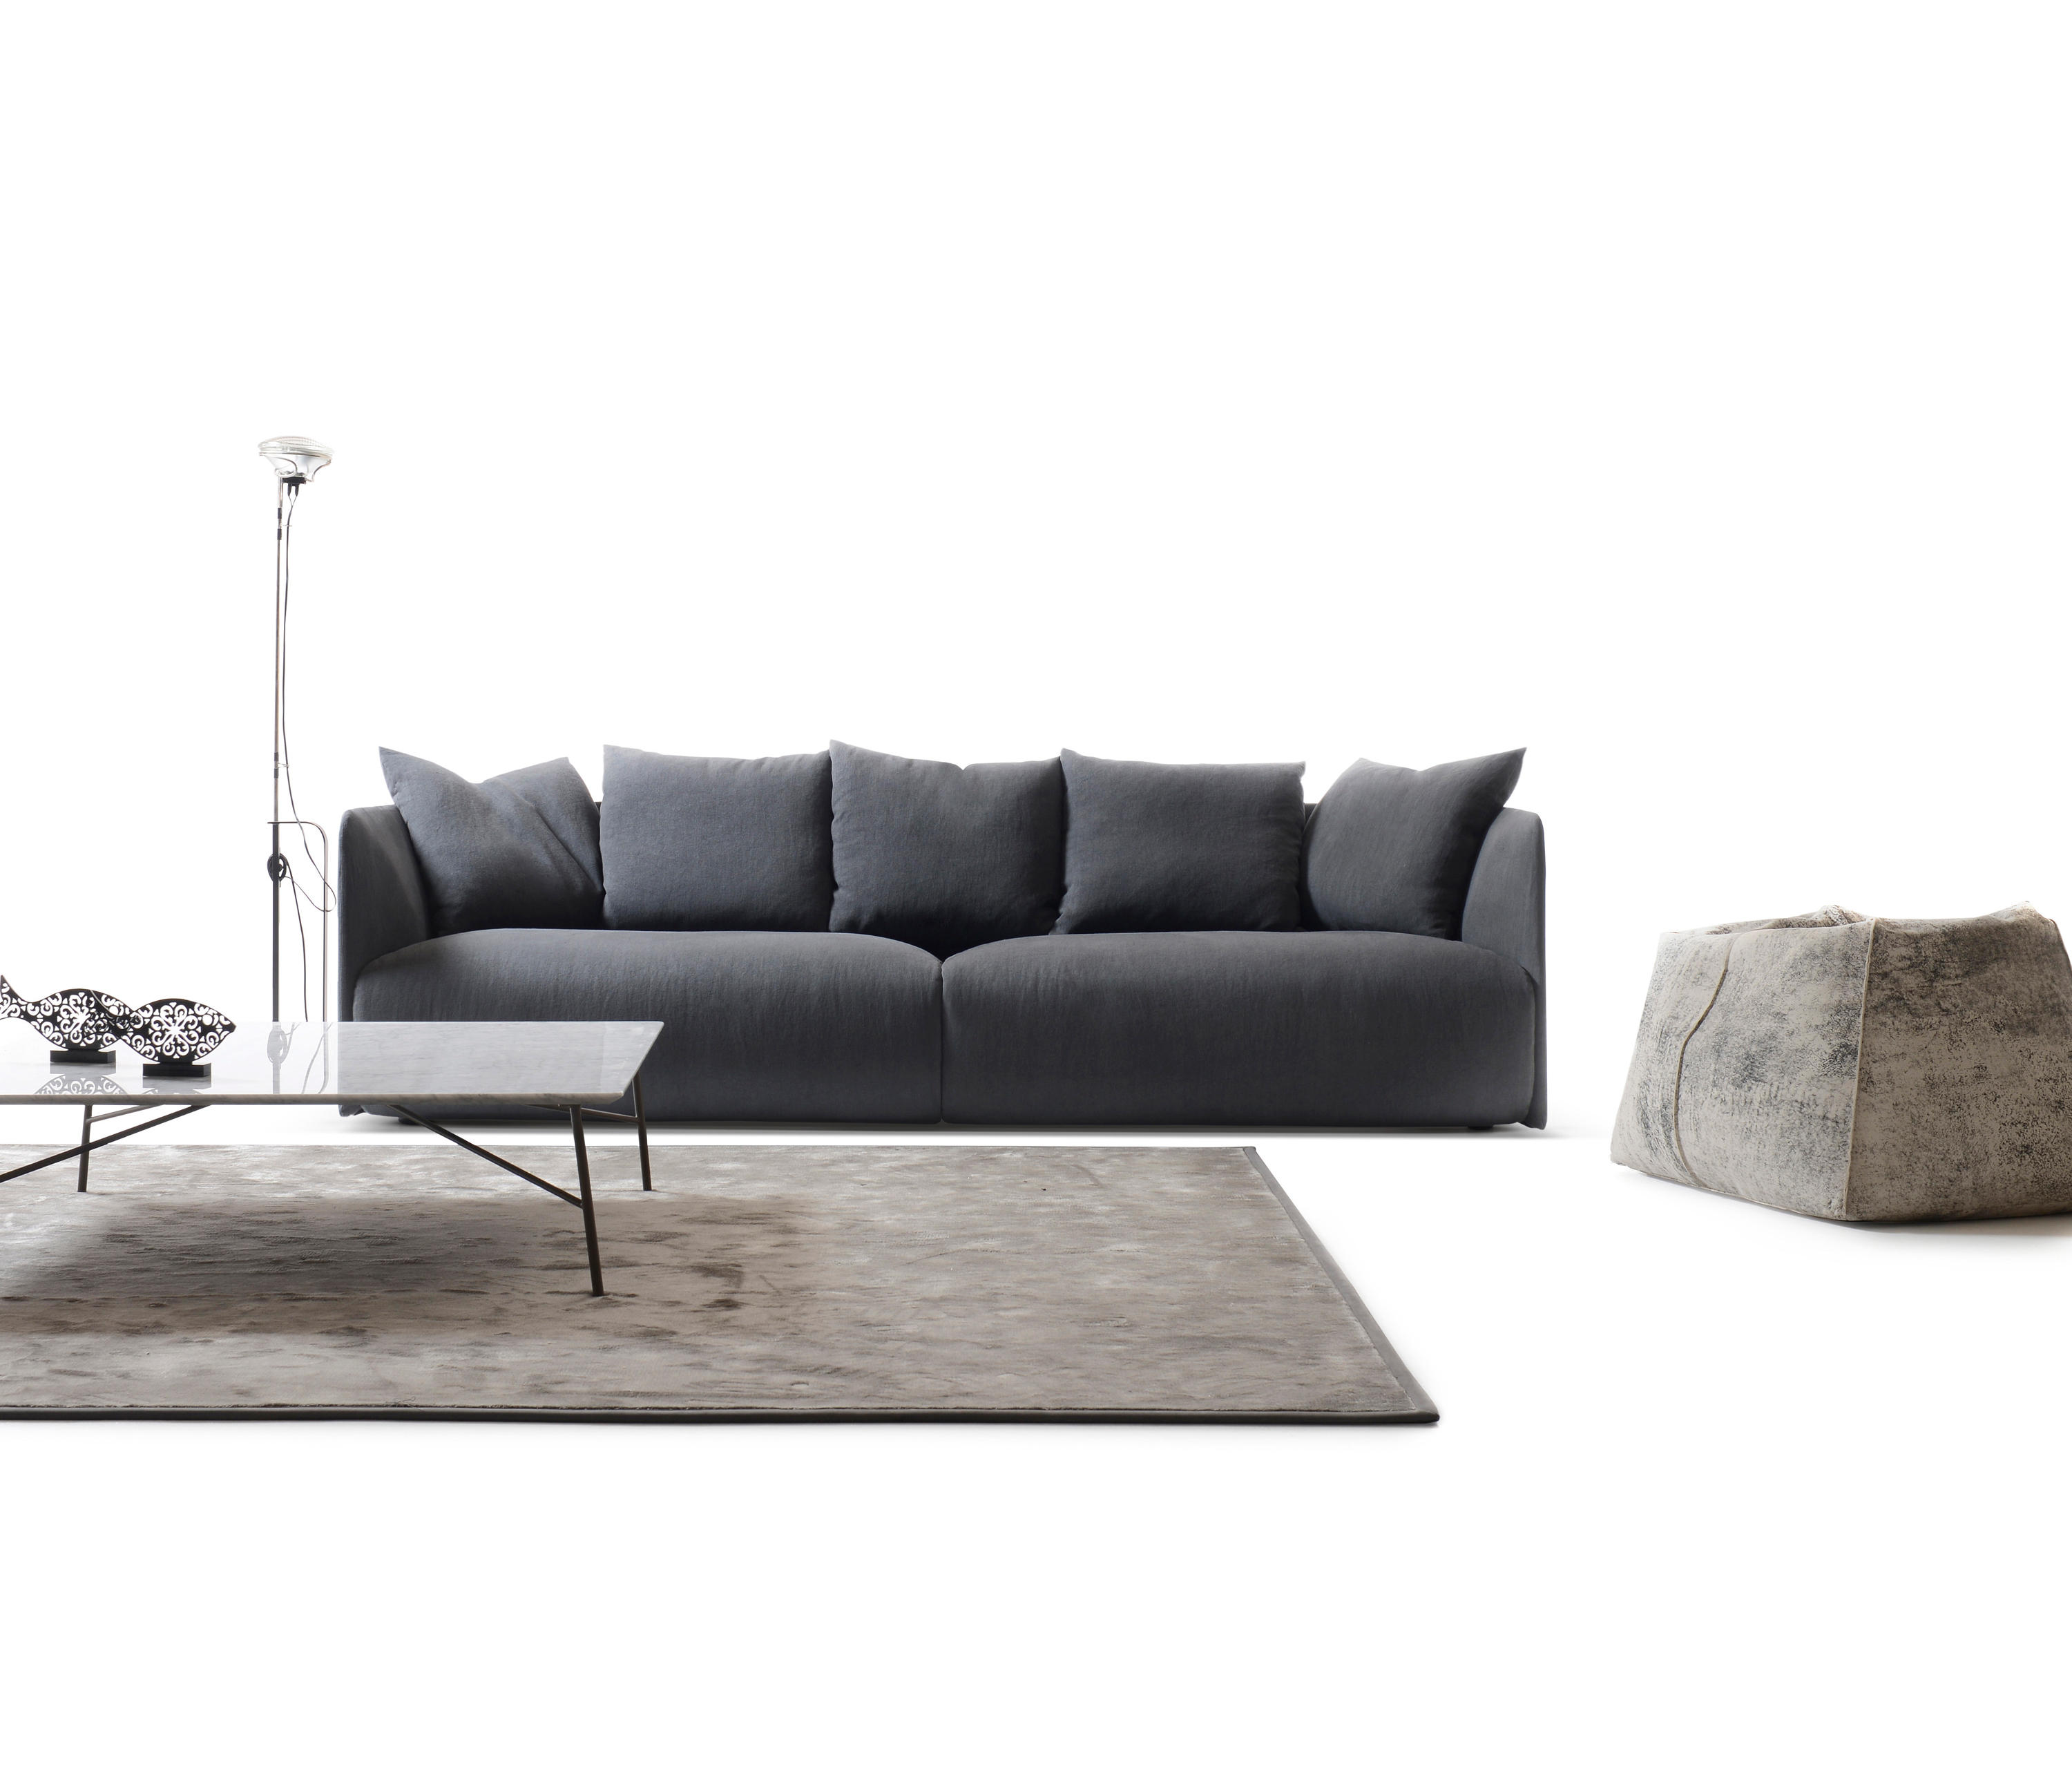 my home sofa LULLABY | SOFA   Sofas from My home collection | Architonic my home sofa